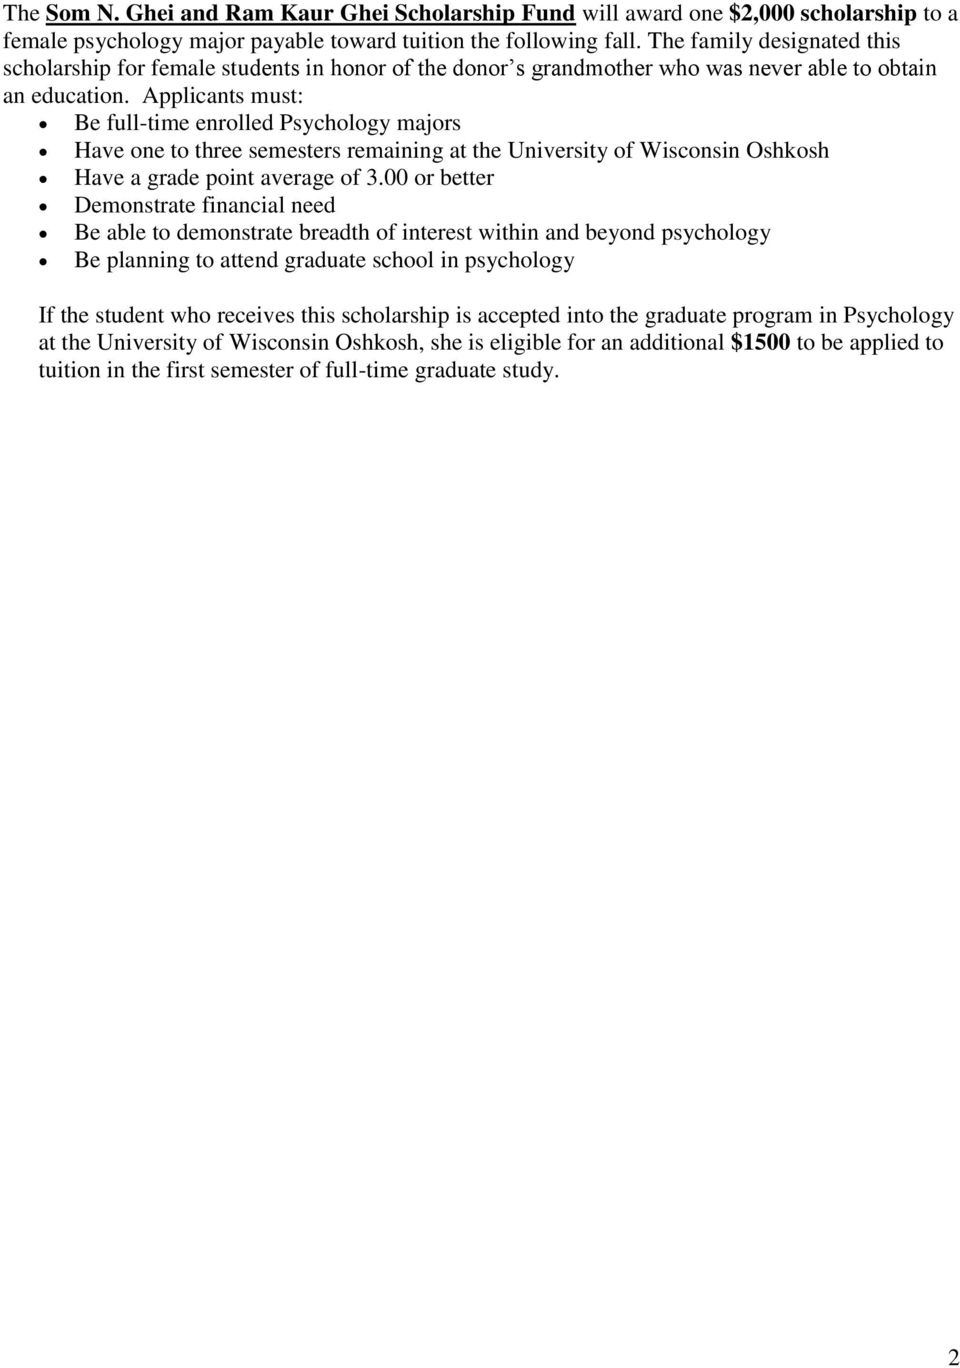 Applicants must: Be full-time enrolled Psychology majors Have one to three semesters remaining at the University of Wisconsin Oshkosh Have a grade point average of 3.